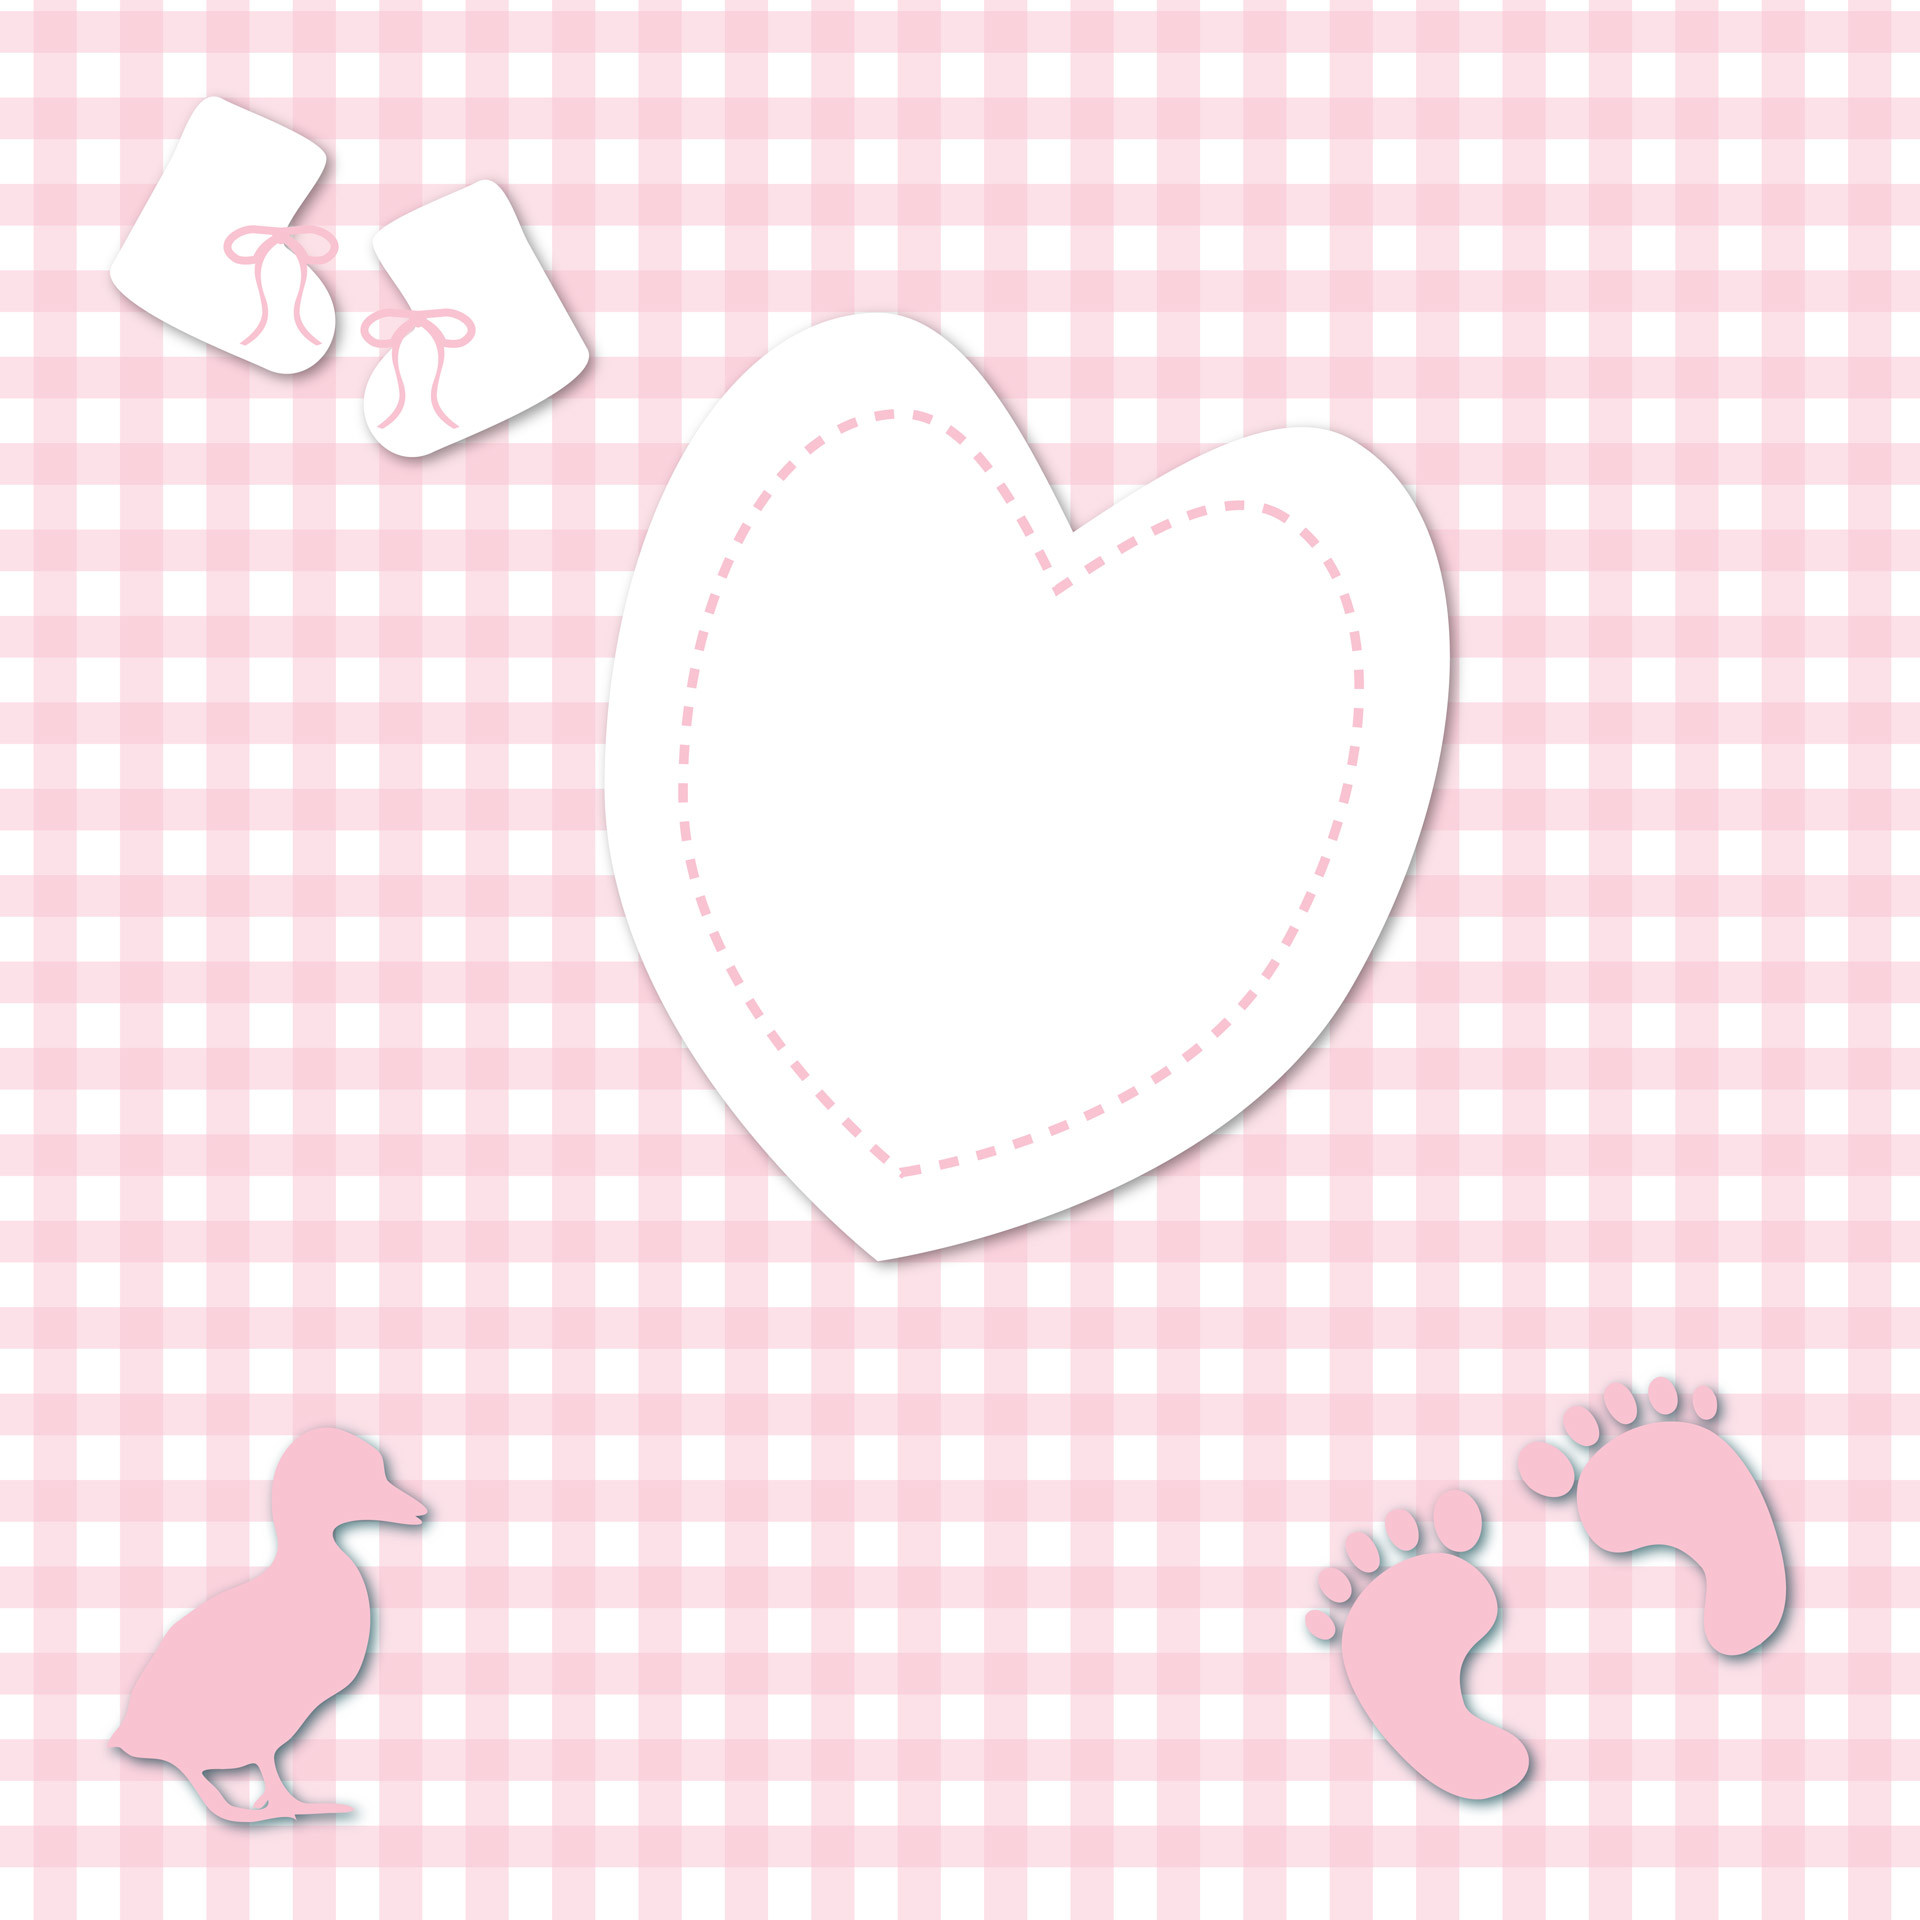 baby background images 183��